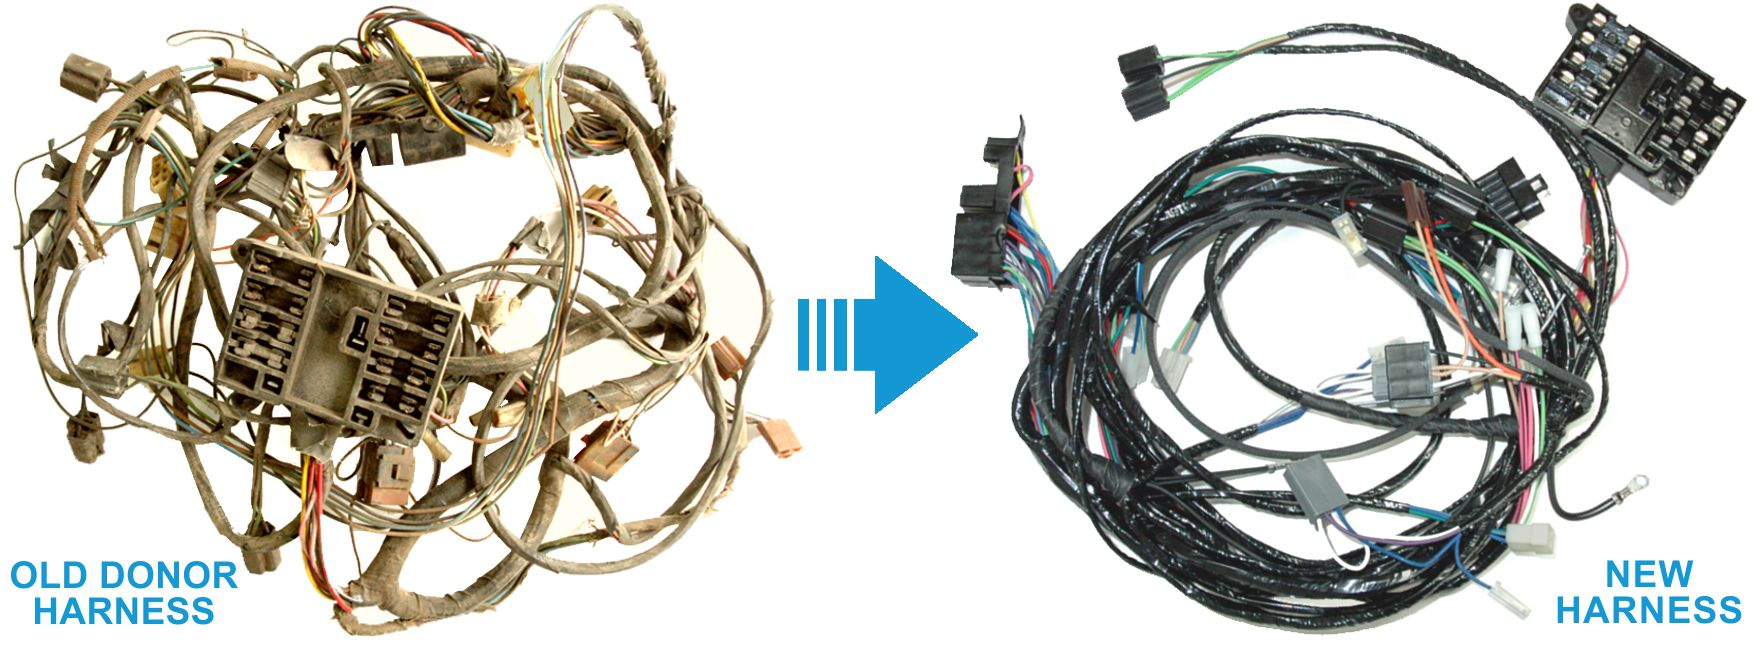 Exact Oem Reproduction Wiring Harnesses For Classic Muscle Cars Was The I Salvaged From Previous Lamps Spliced Wire Donor Harness